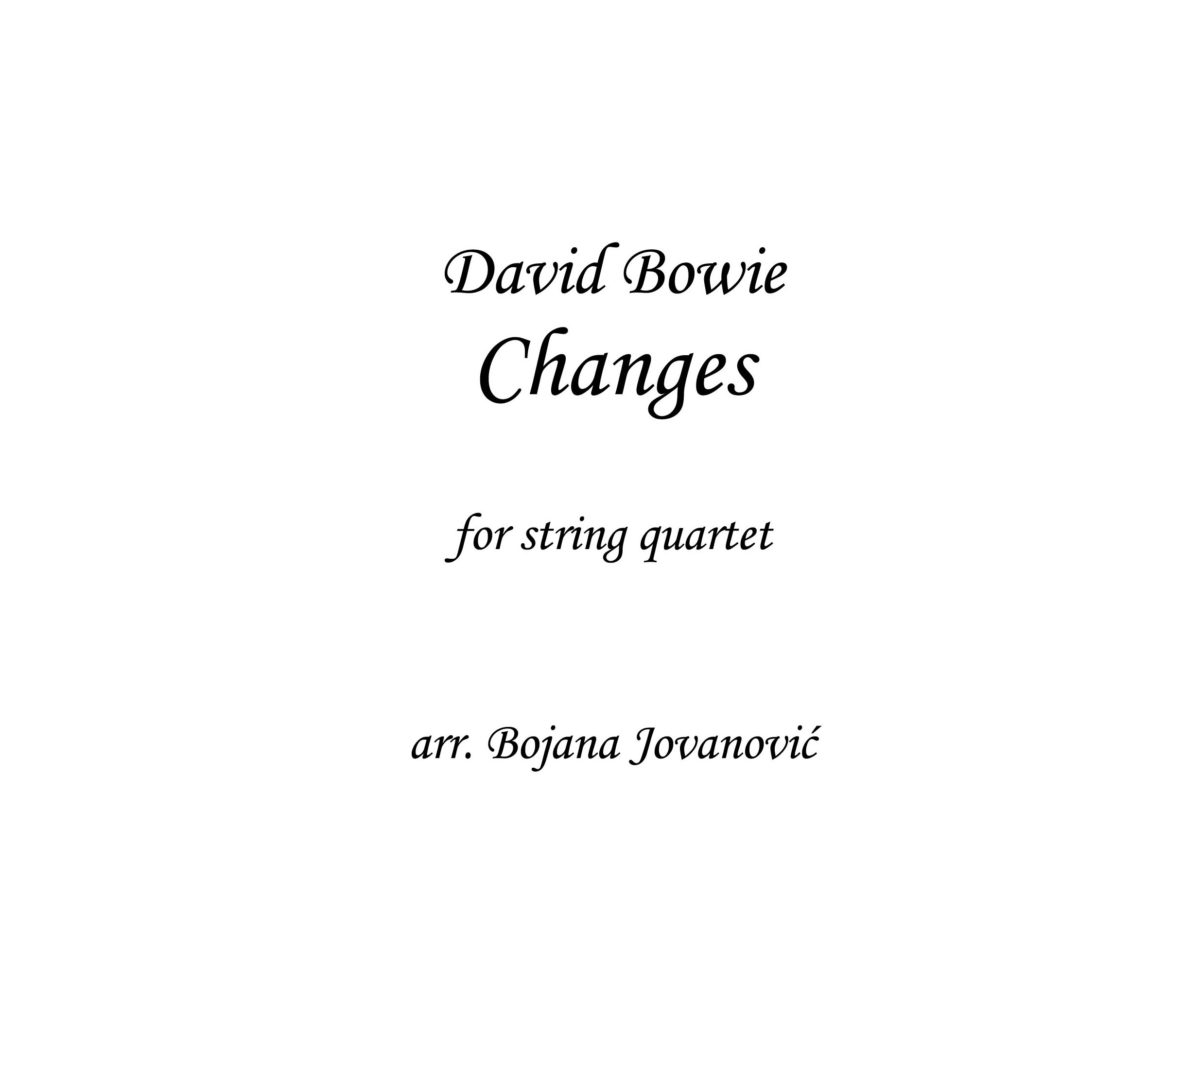 Changes (David Bowie) - Sheet Music